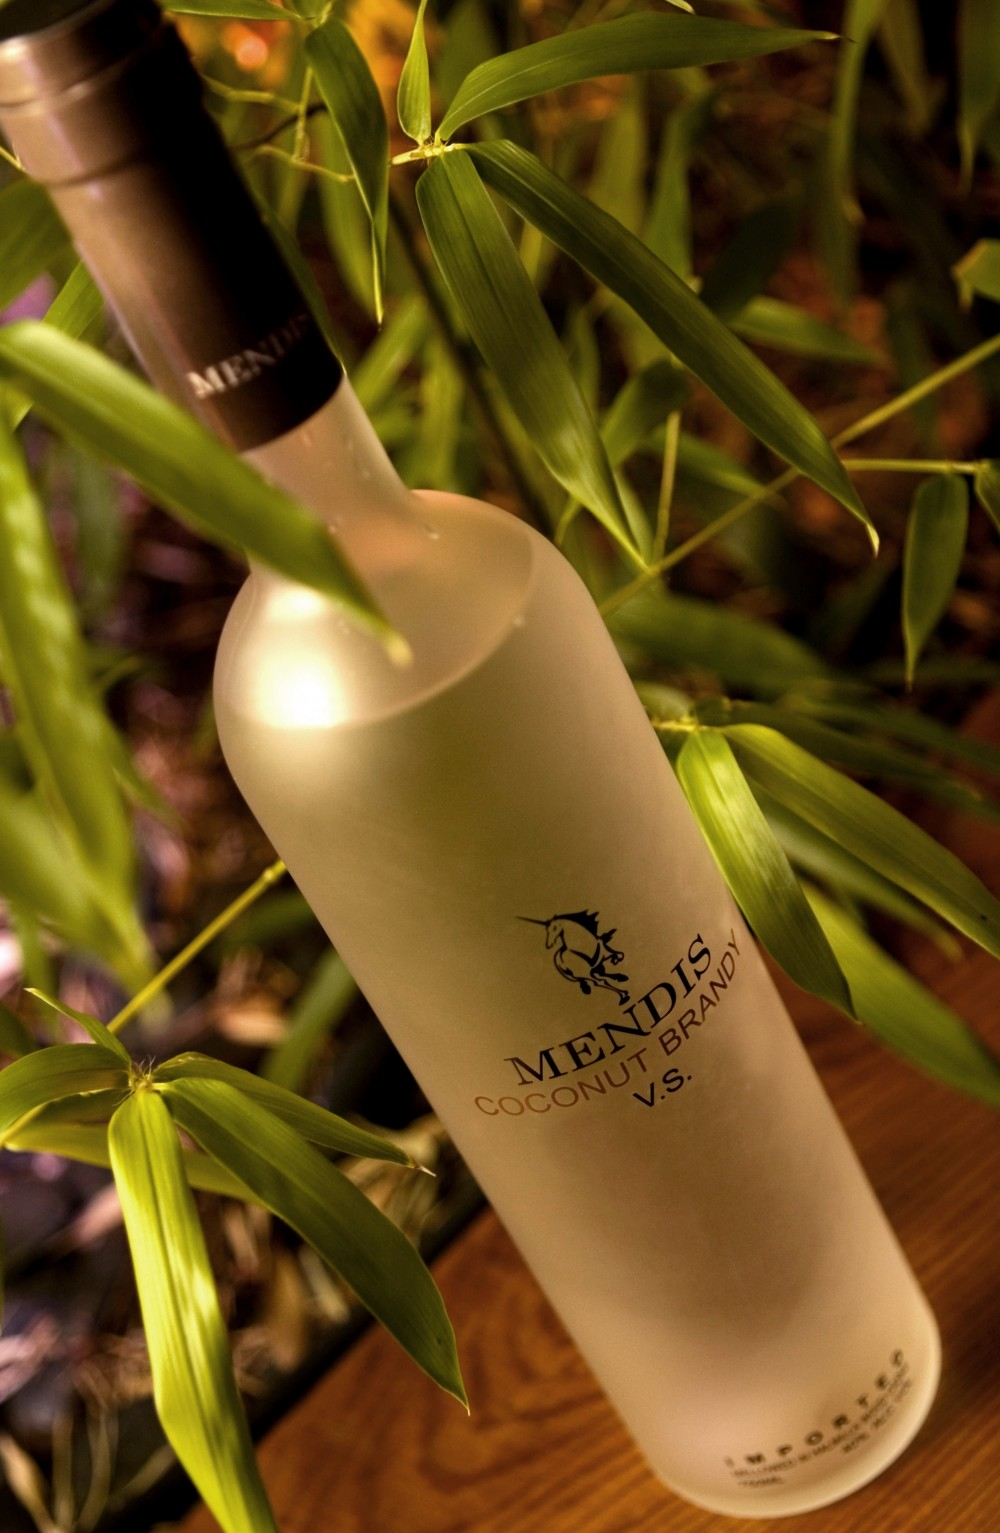 11. Mendis Coconut Brandy – $1 миллион.